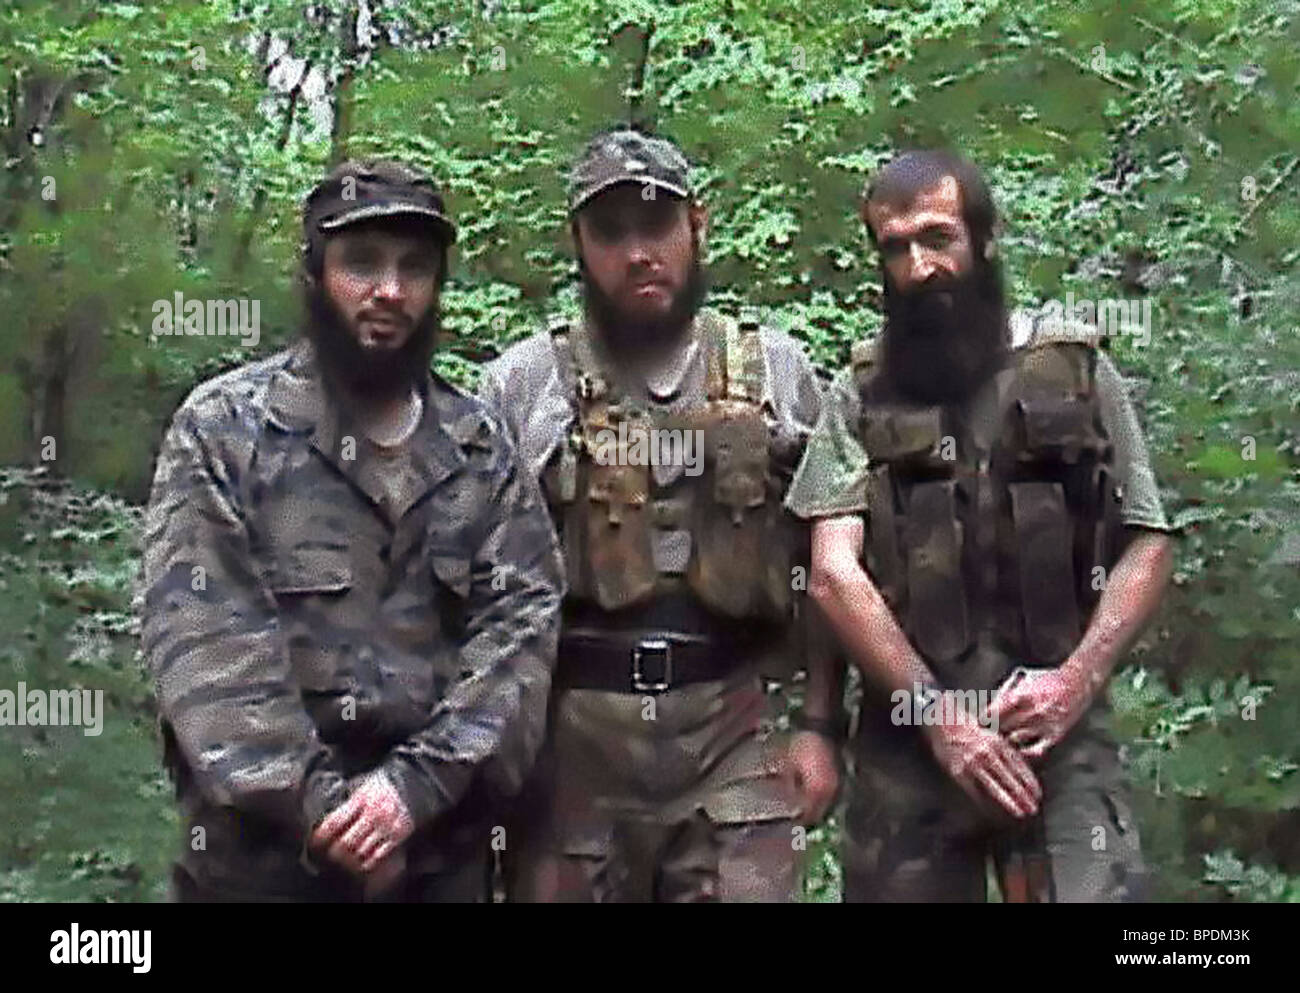 Dagestani militant Rabbani killed in operation by Russian special forces - Stock Image